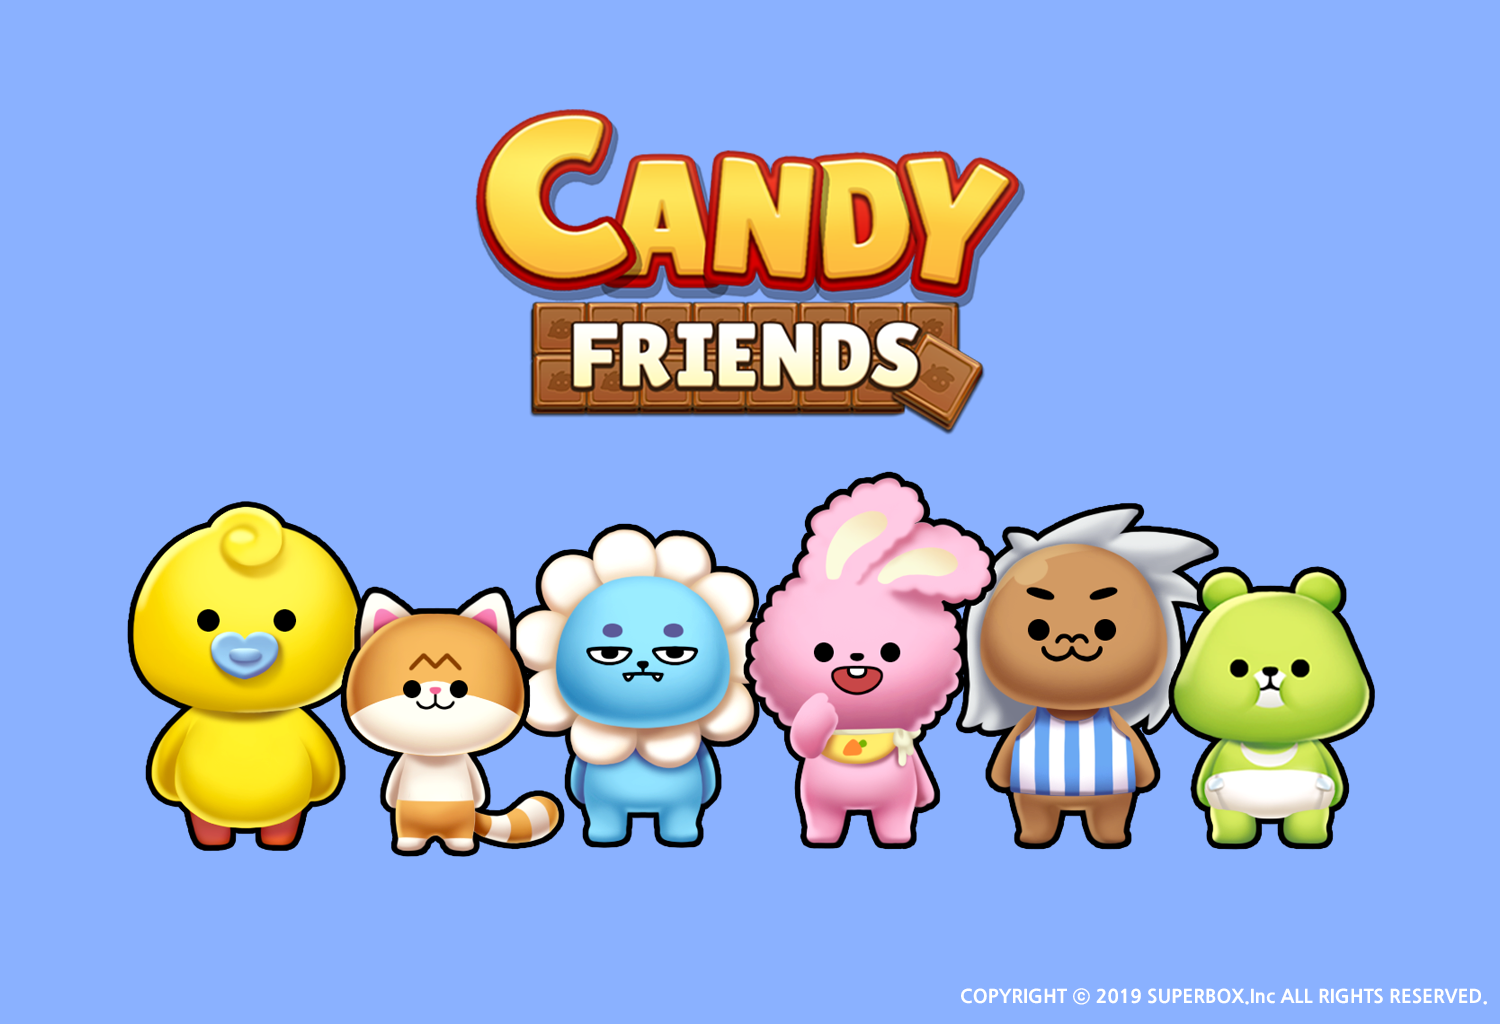 Dazzling match-3 puzzler Candy Friends launches for iOS and Android